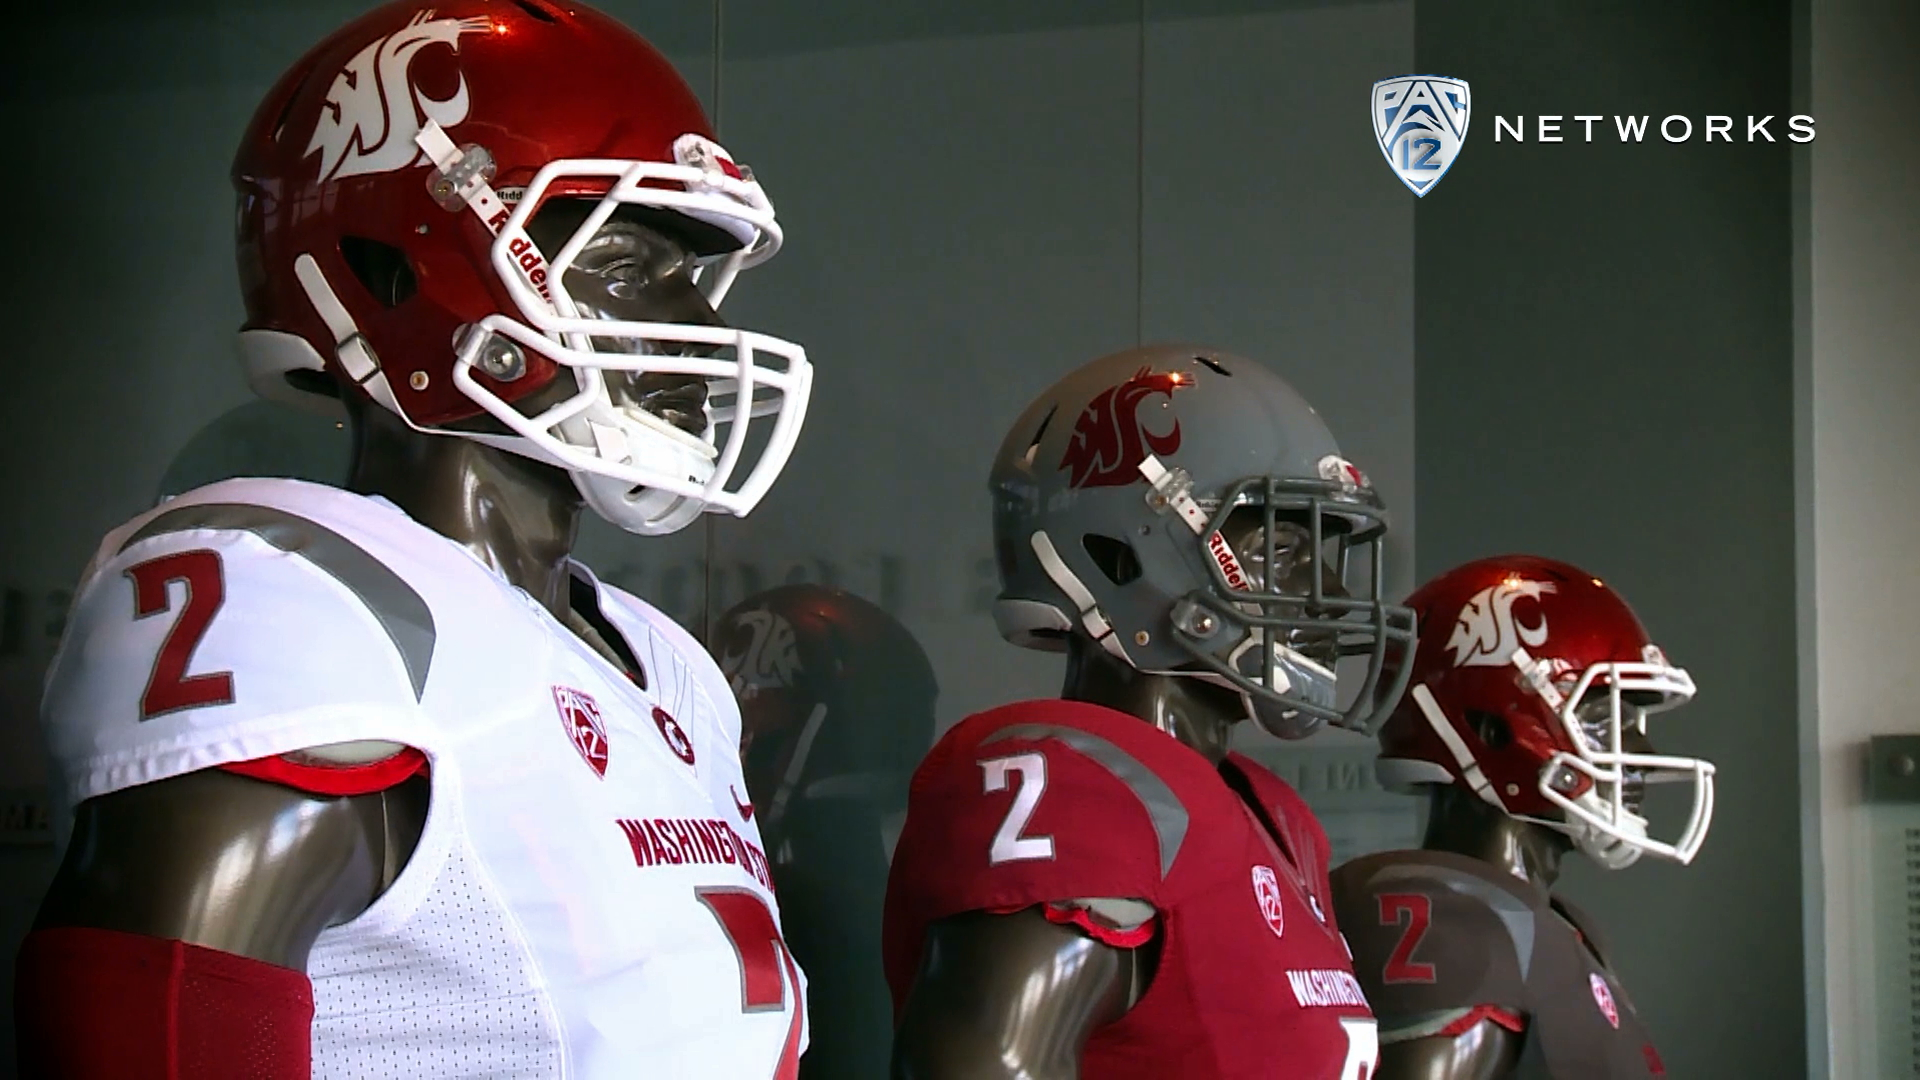 Washington State's Darryl Monroe gives tour of new football complex | Pac-12